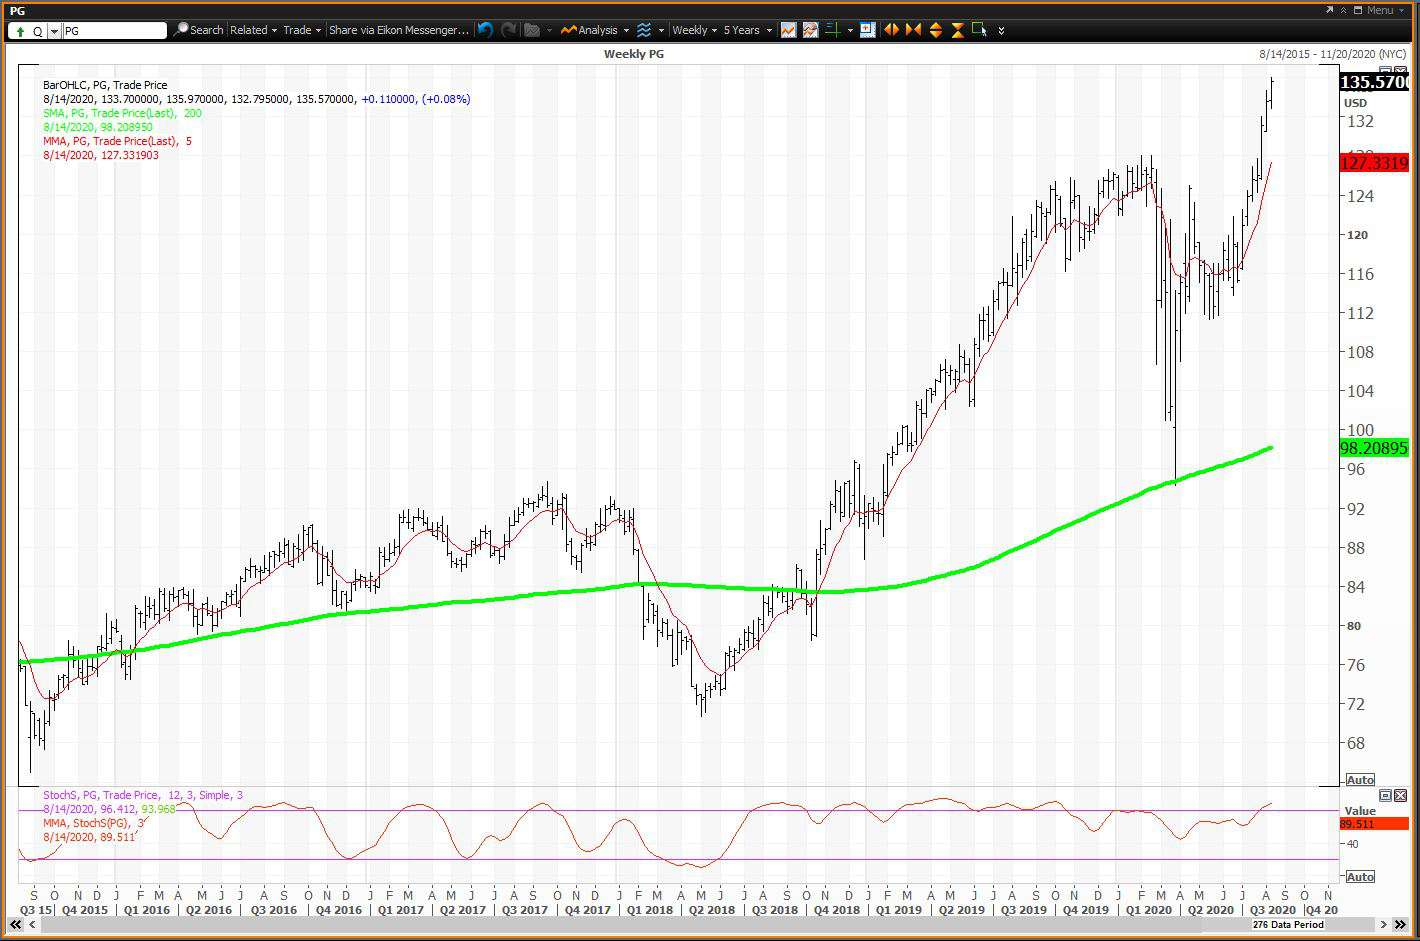 Weekly chart showing the share price performance of The Procter & Gamble Company (PG)